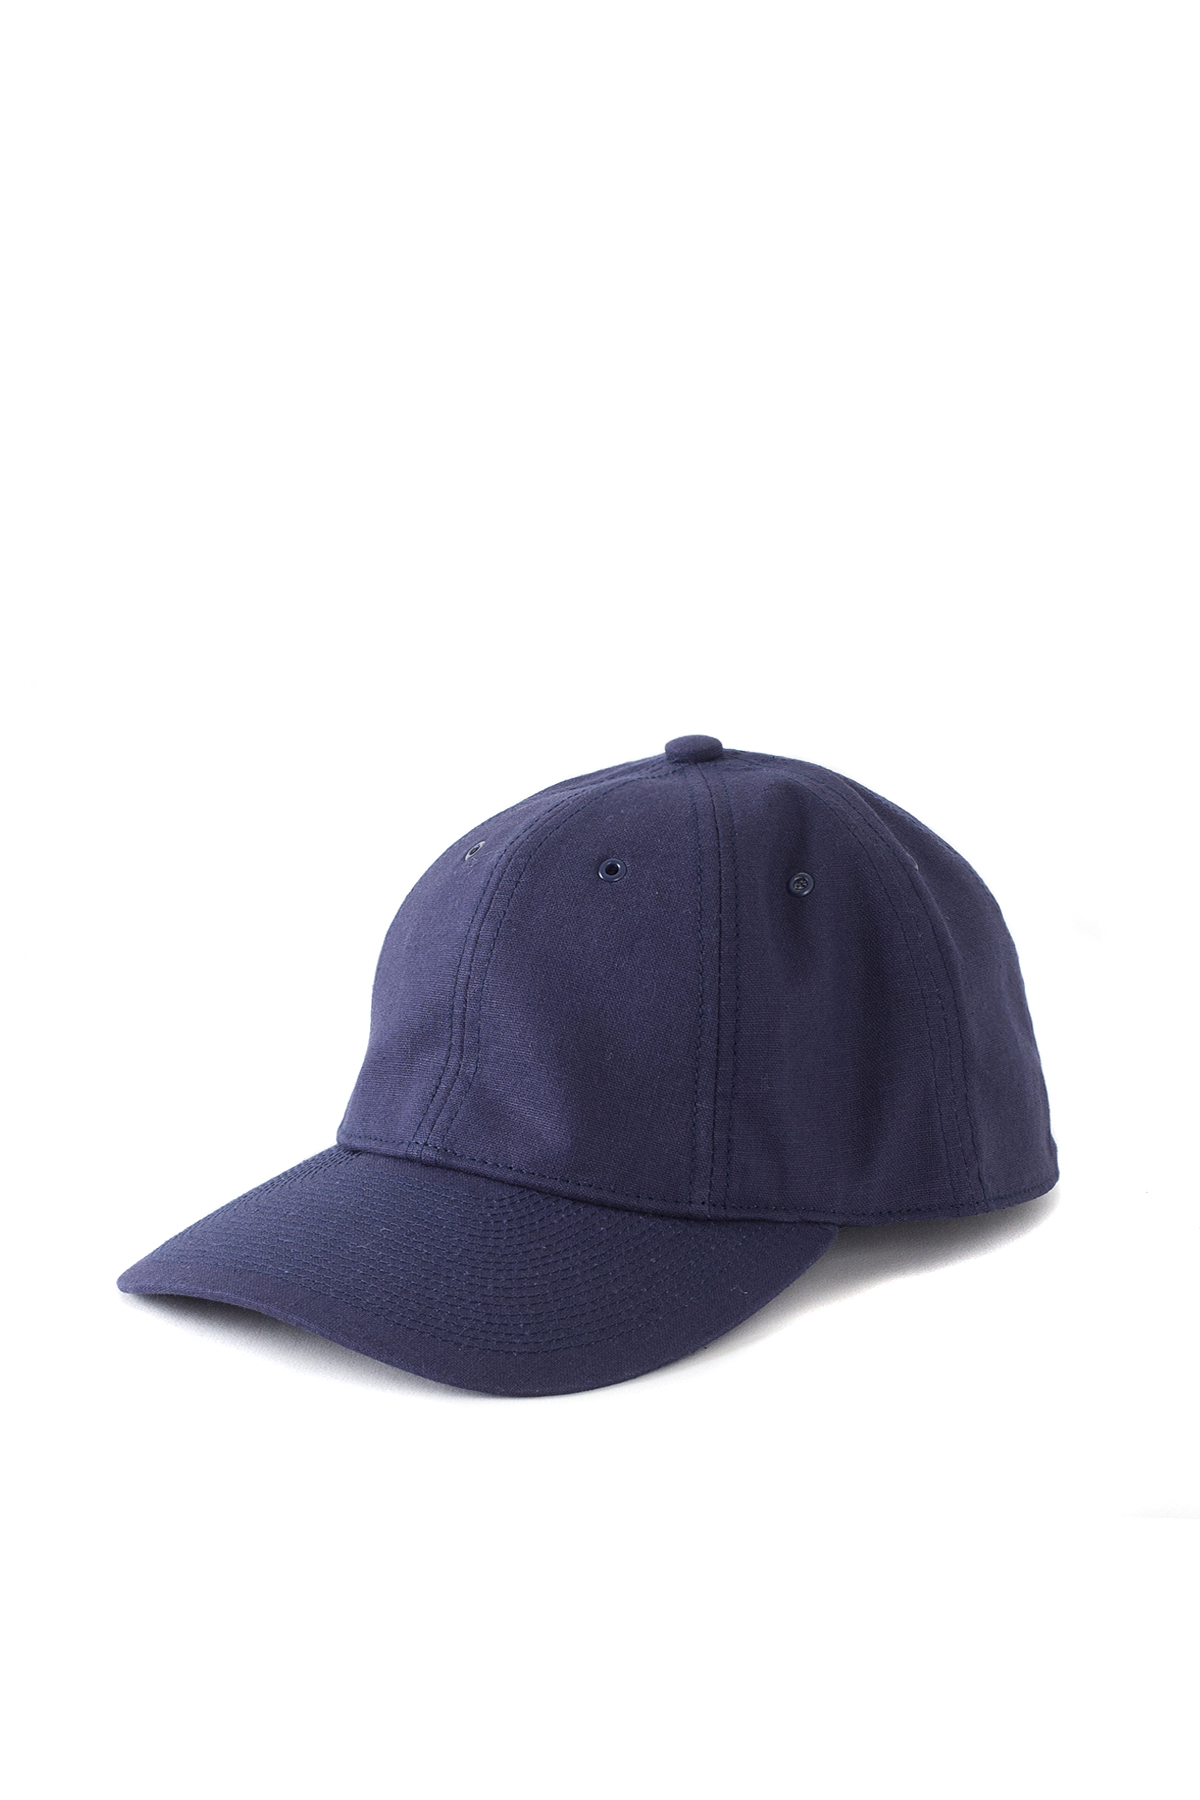 POTEN : Linen & Cotton (Navy)